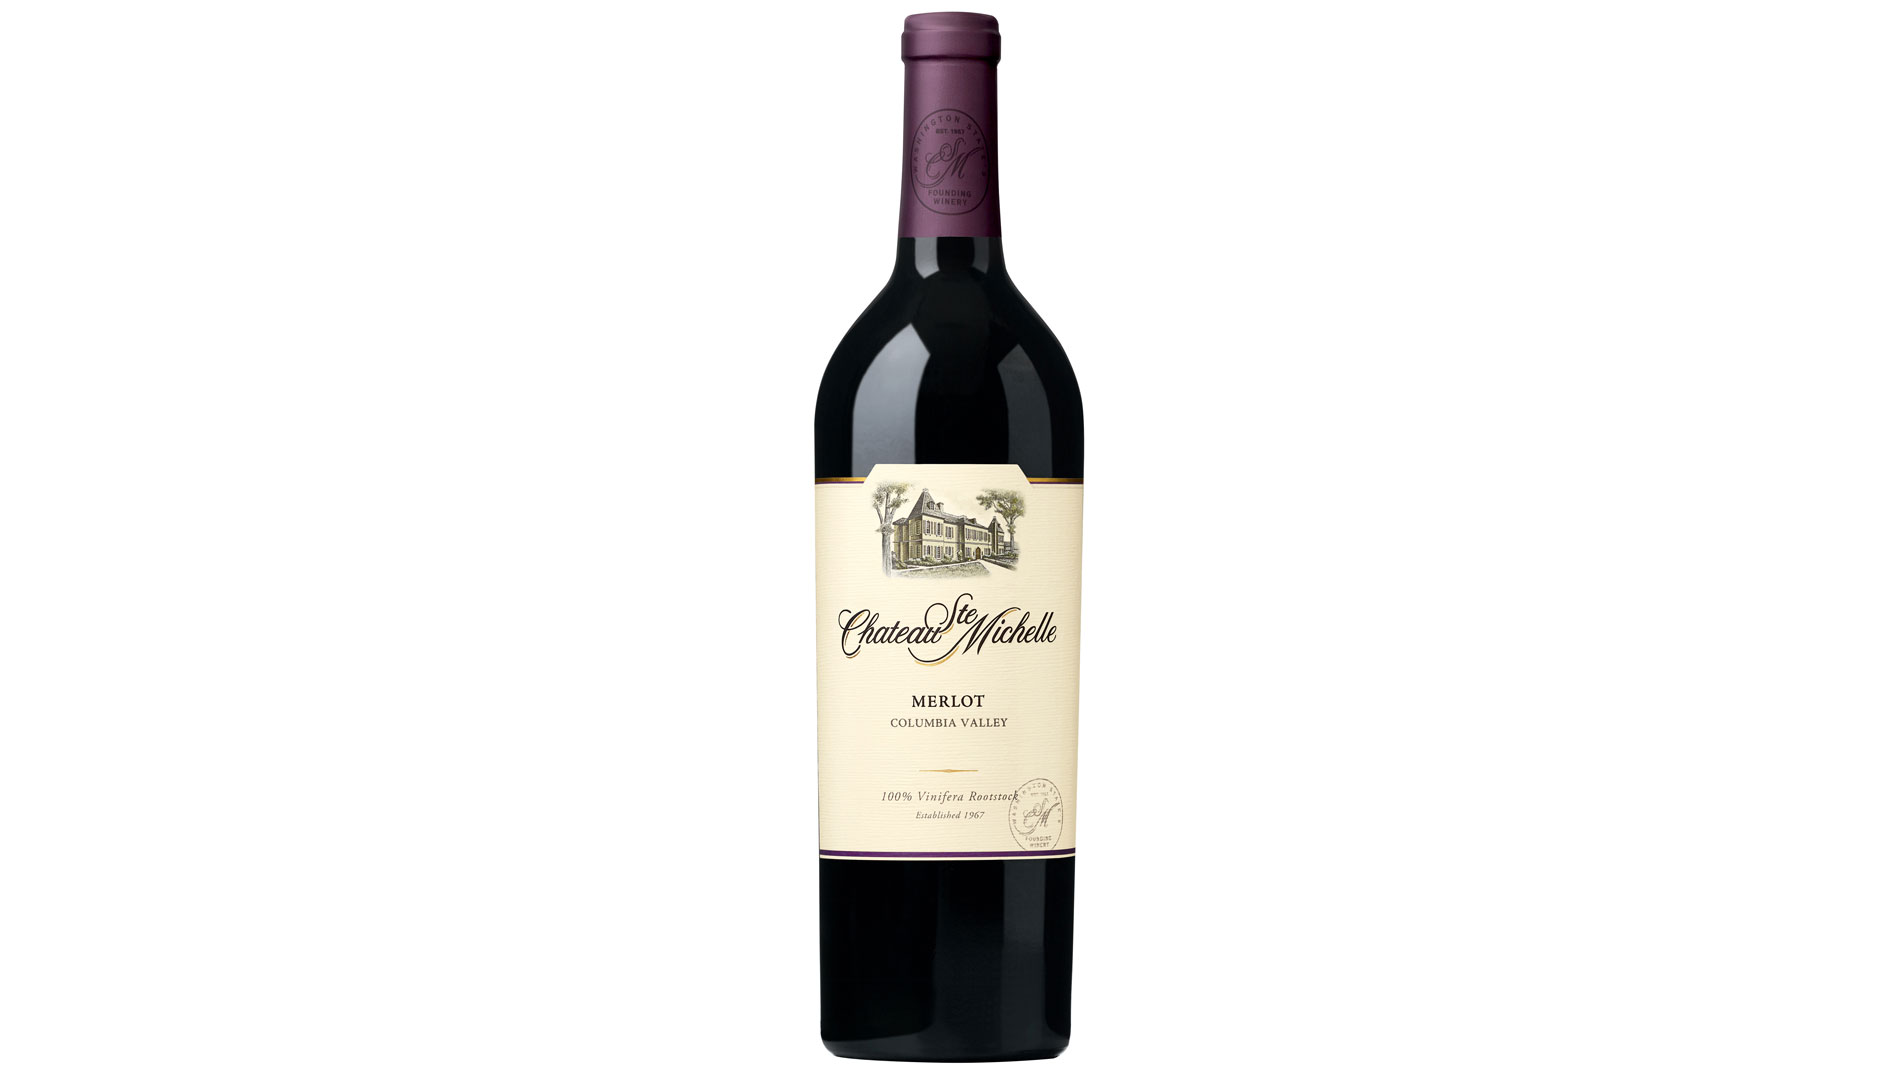 Ste城堡。米歇尔 Columbia Valley Merlot ($15)